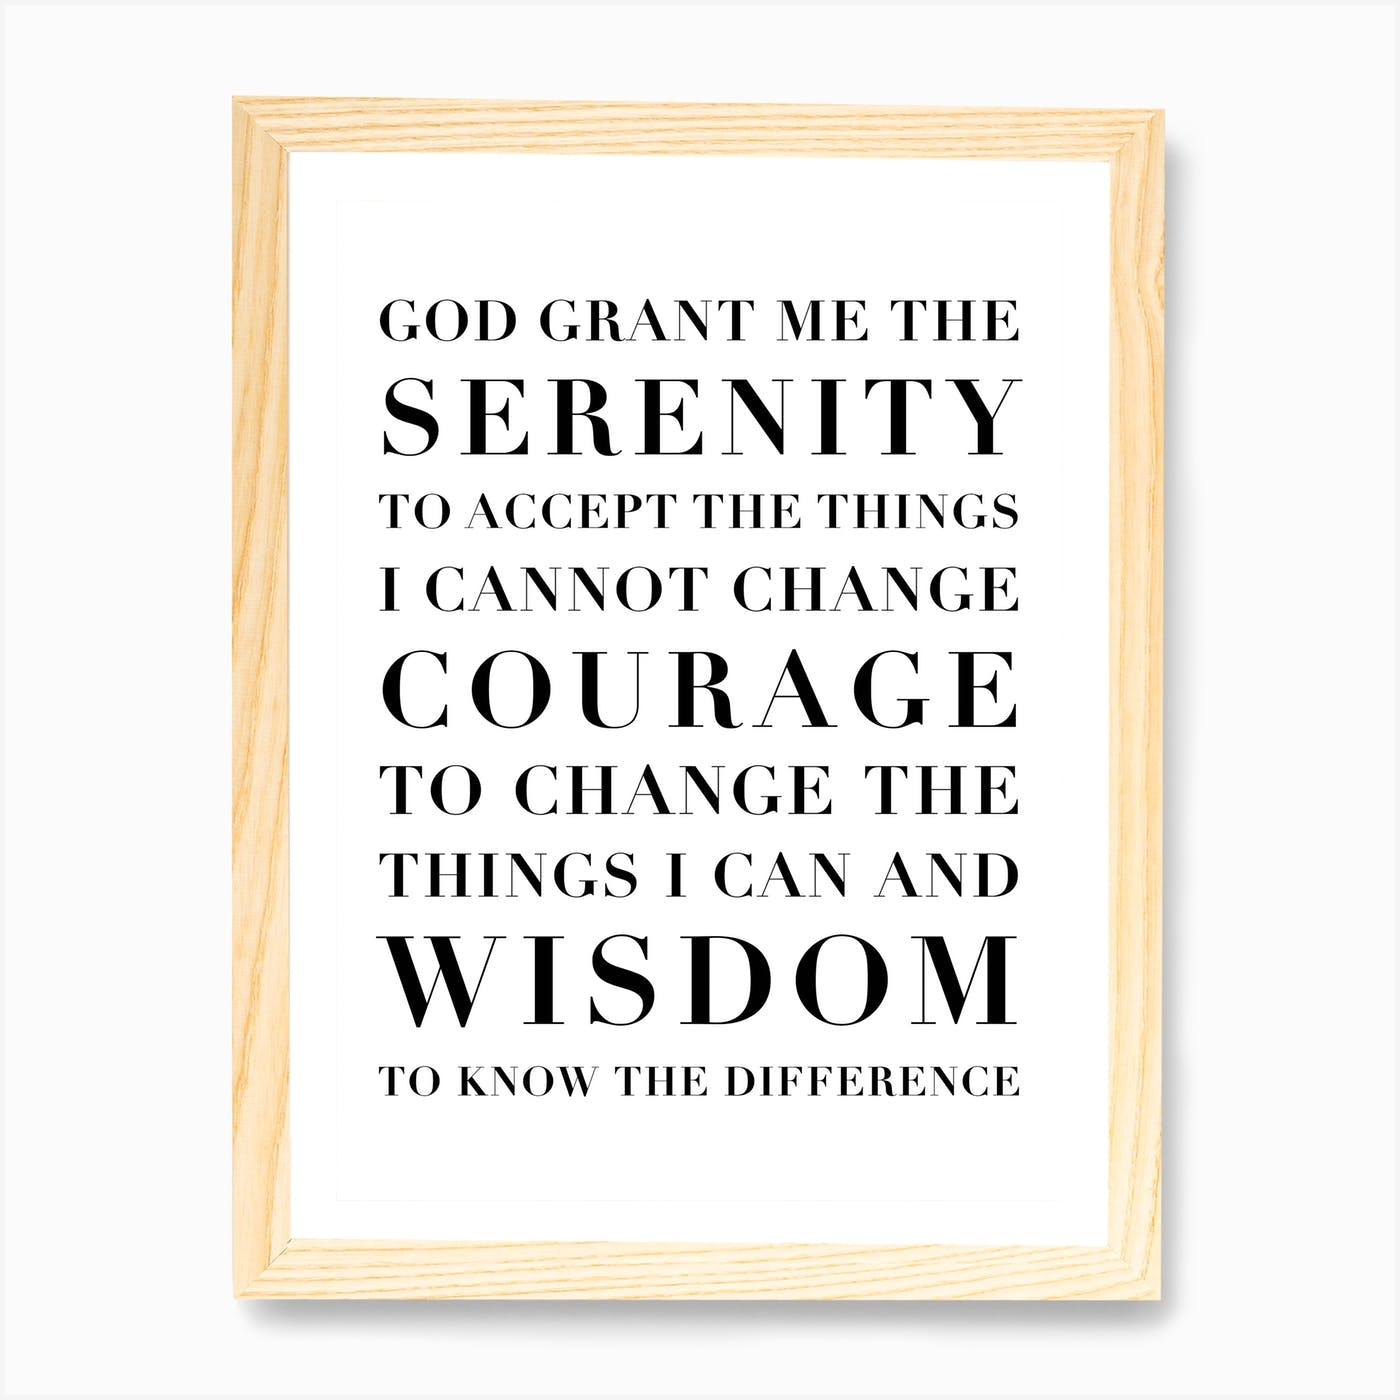 the serenity prayer capitalized art print by typologie paper co fy free printable gen std coloring pages Free Printable Serenity Prayer